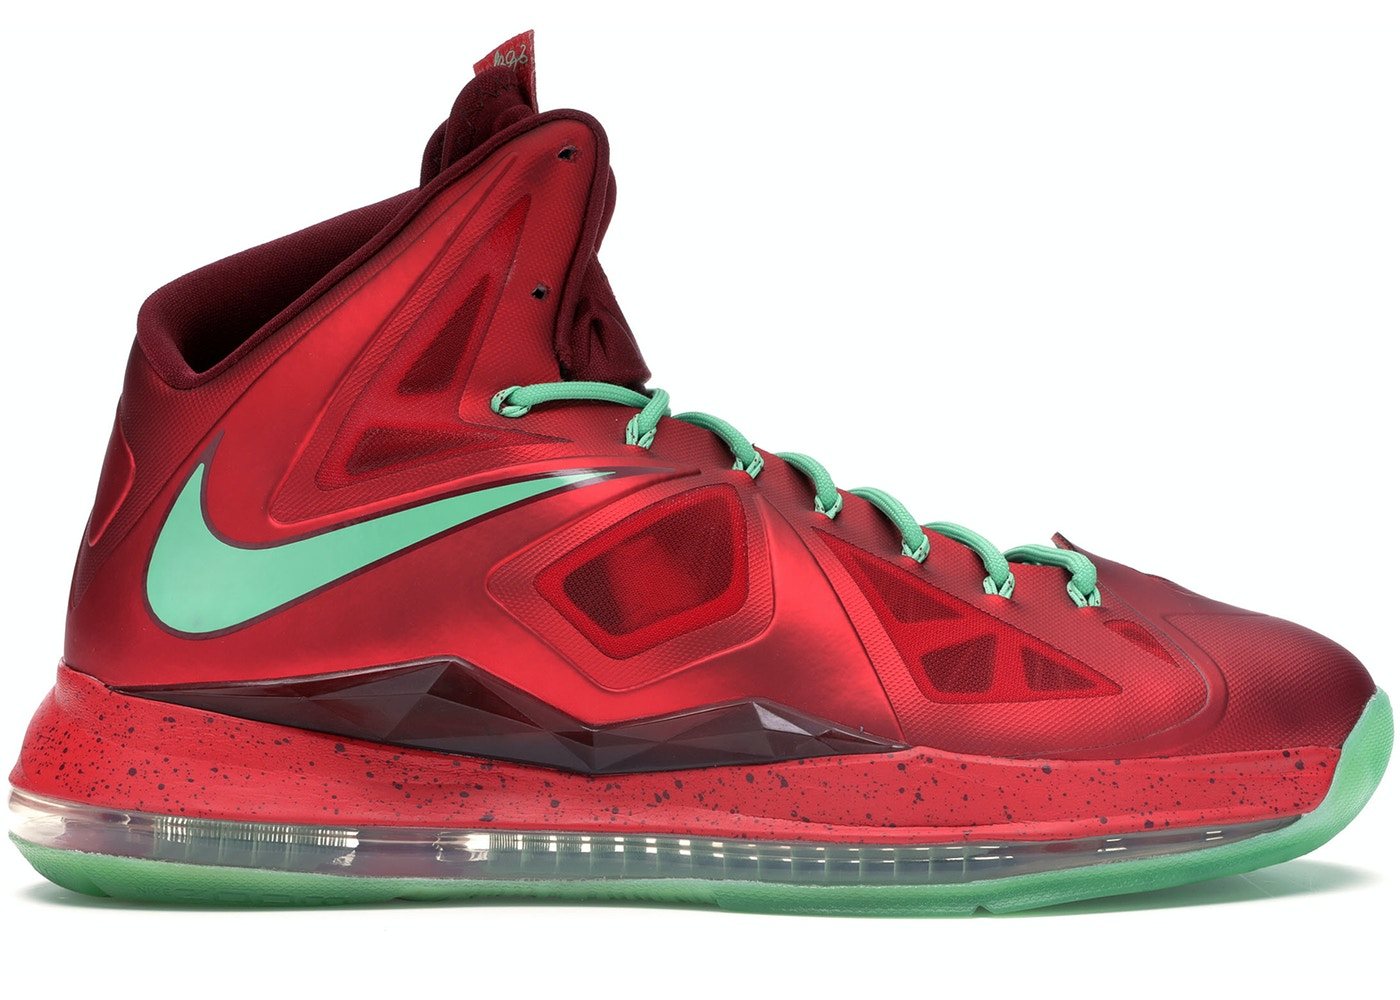 6df12b318341 Buy Nike LeBron 10 Shoes   Deadstock Sneakers